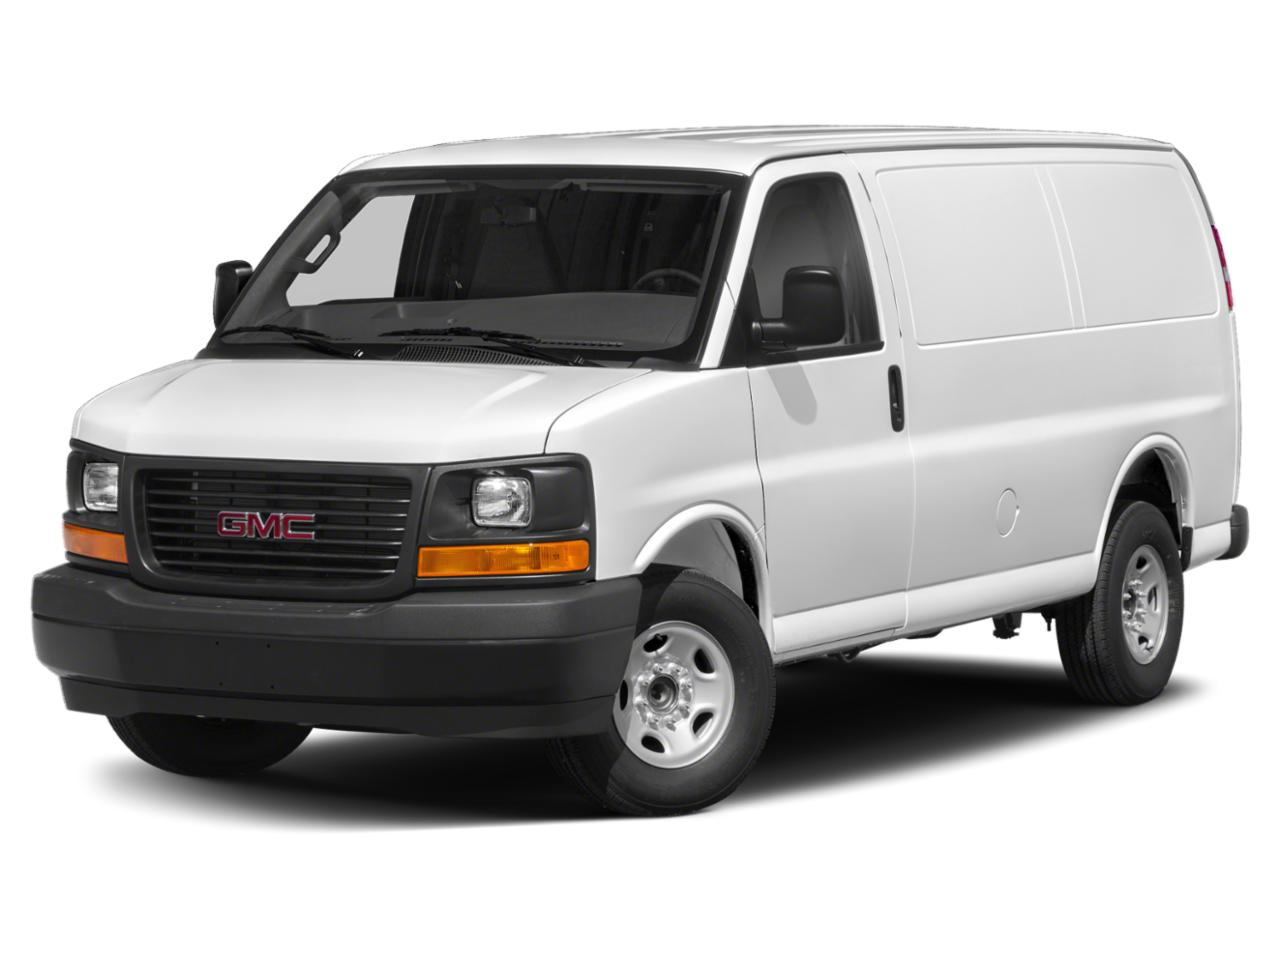 2018 GMC Savana Cargo Van Vehicle Photo in Ocala, FL 34474